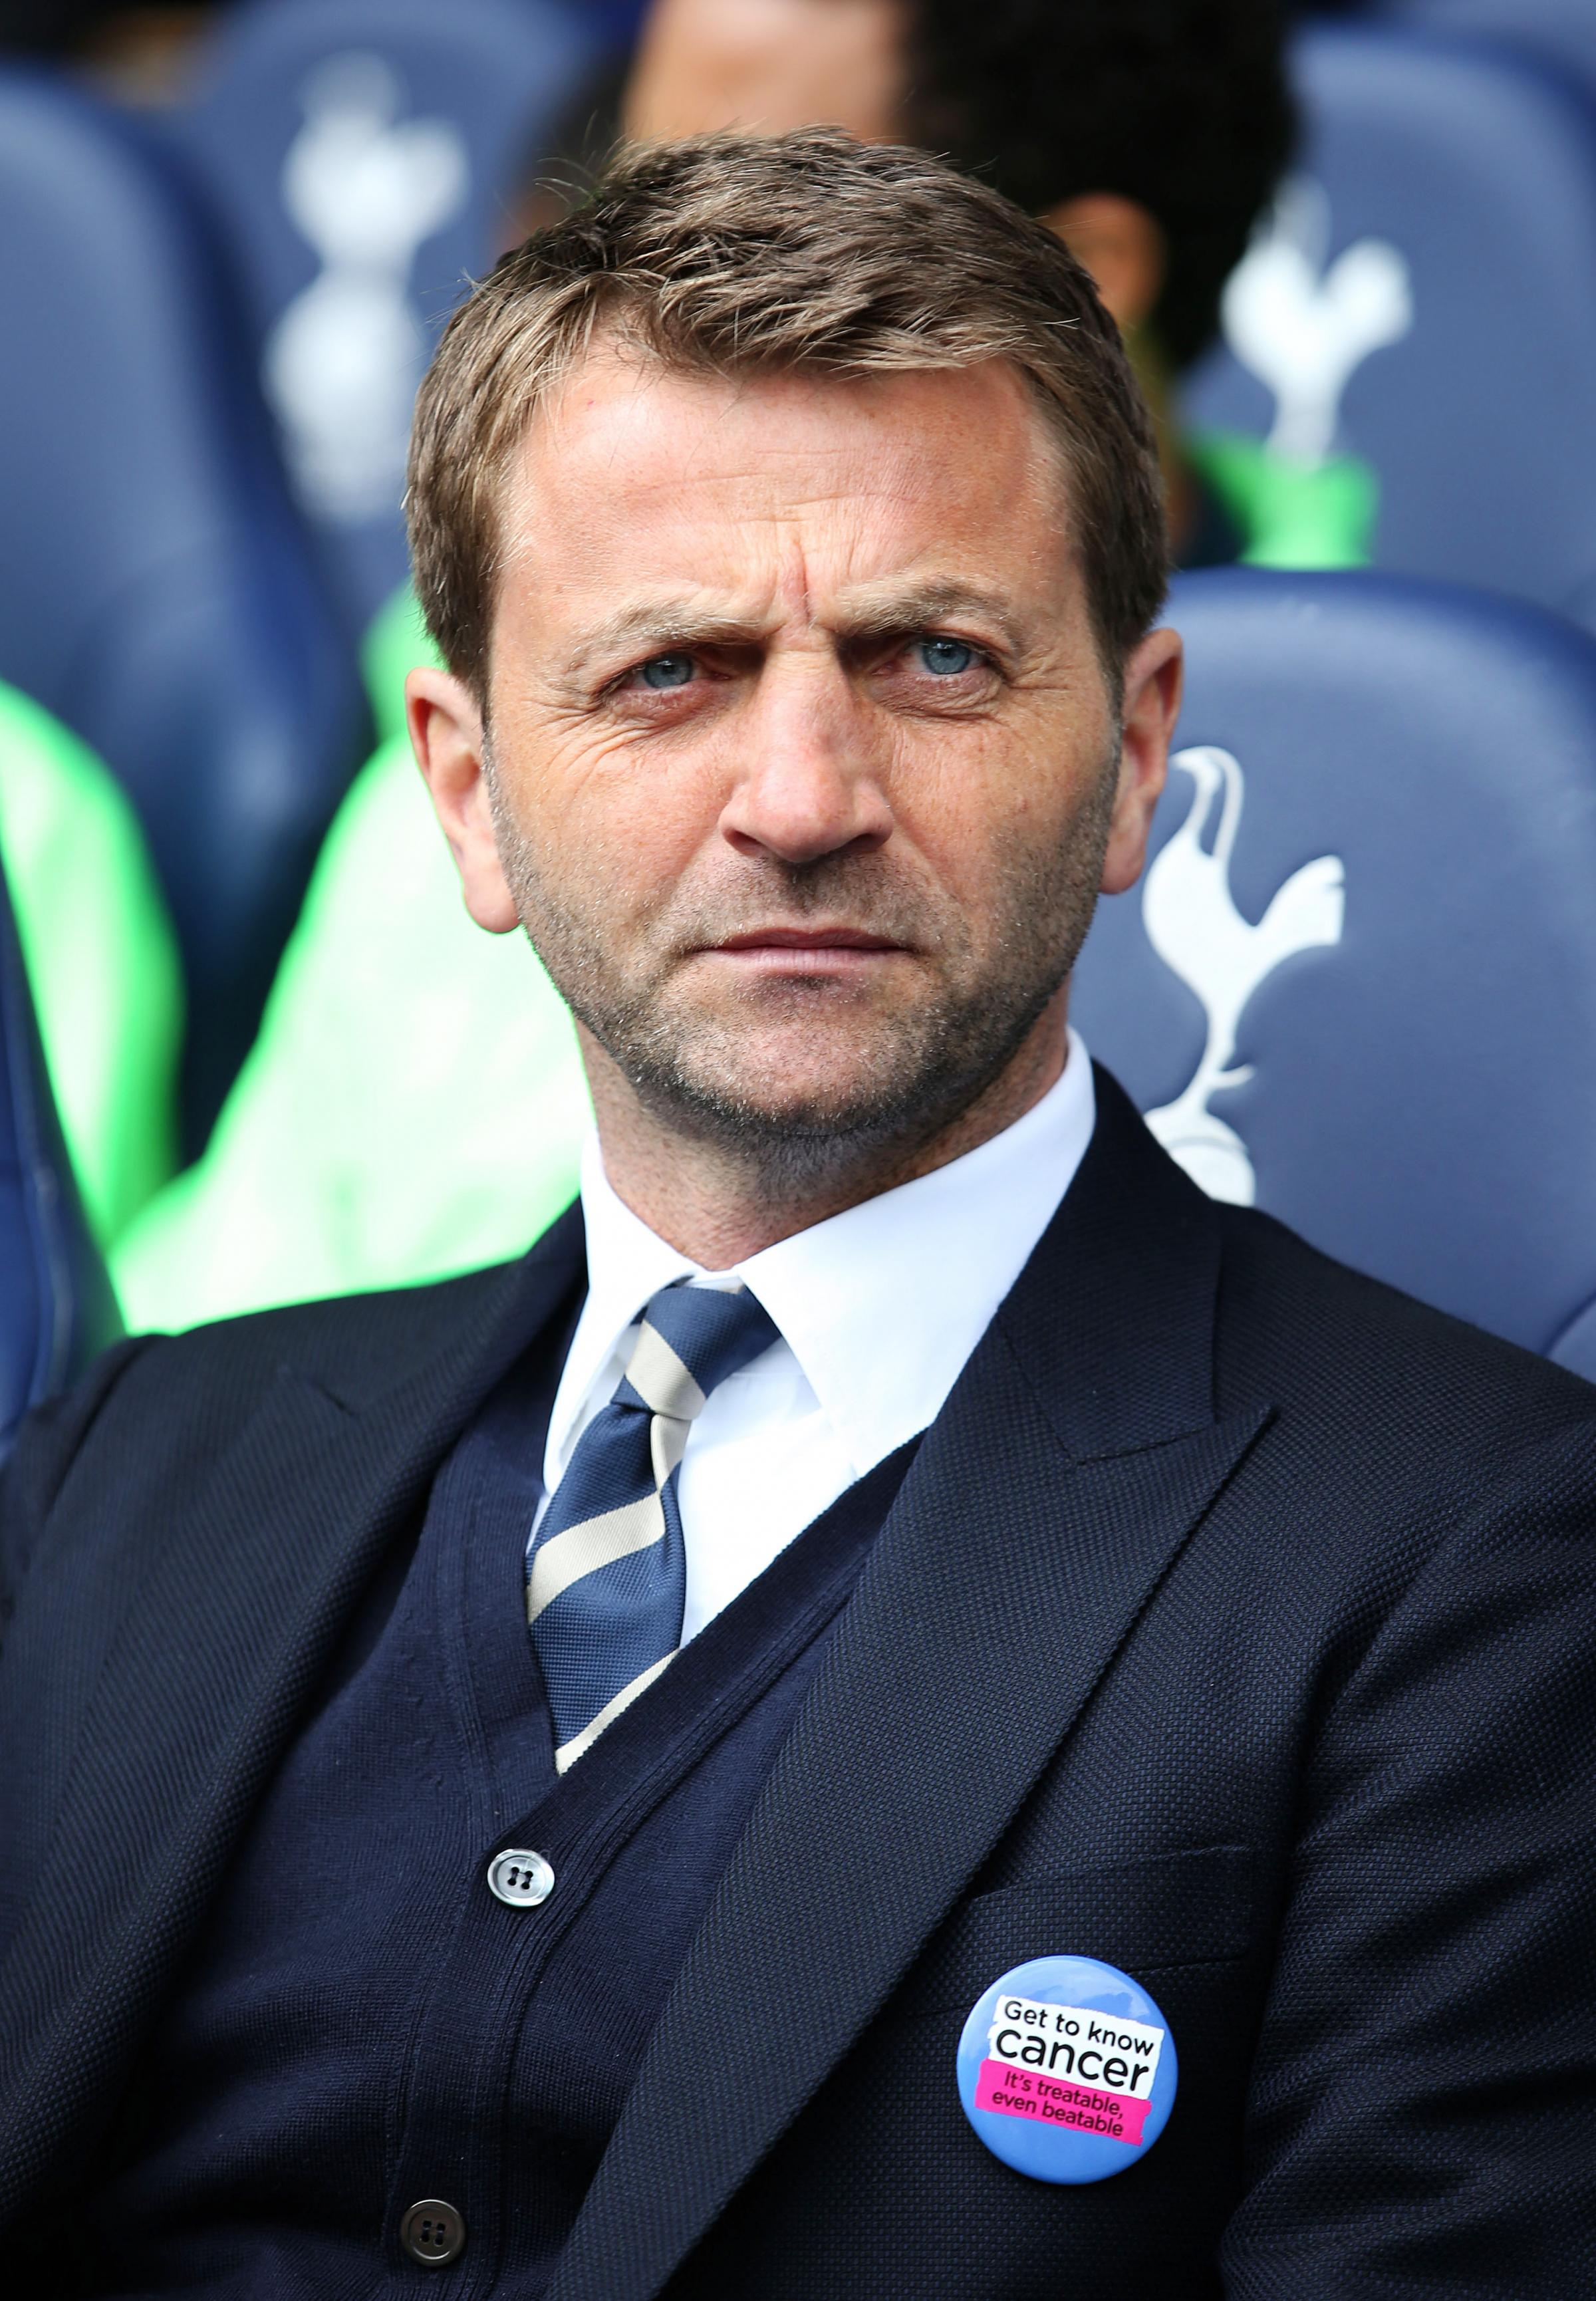 Tim Sherwood's position is under scrutiny with Frank de Boer linked with the role: Action Images